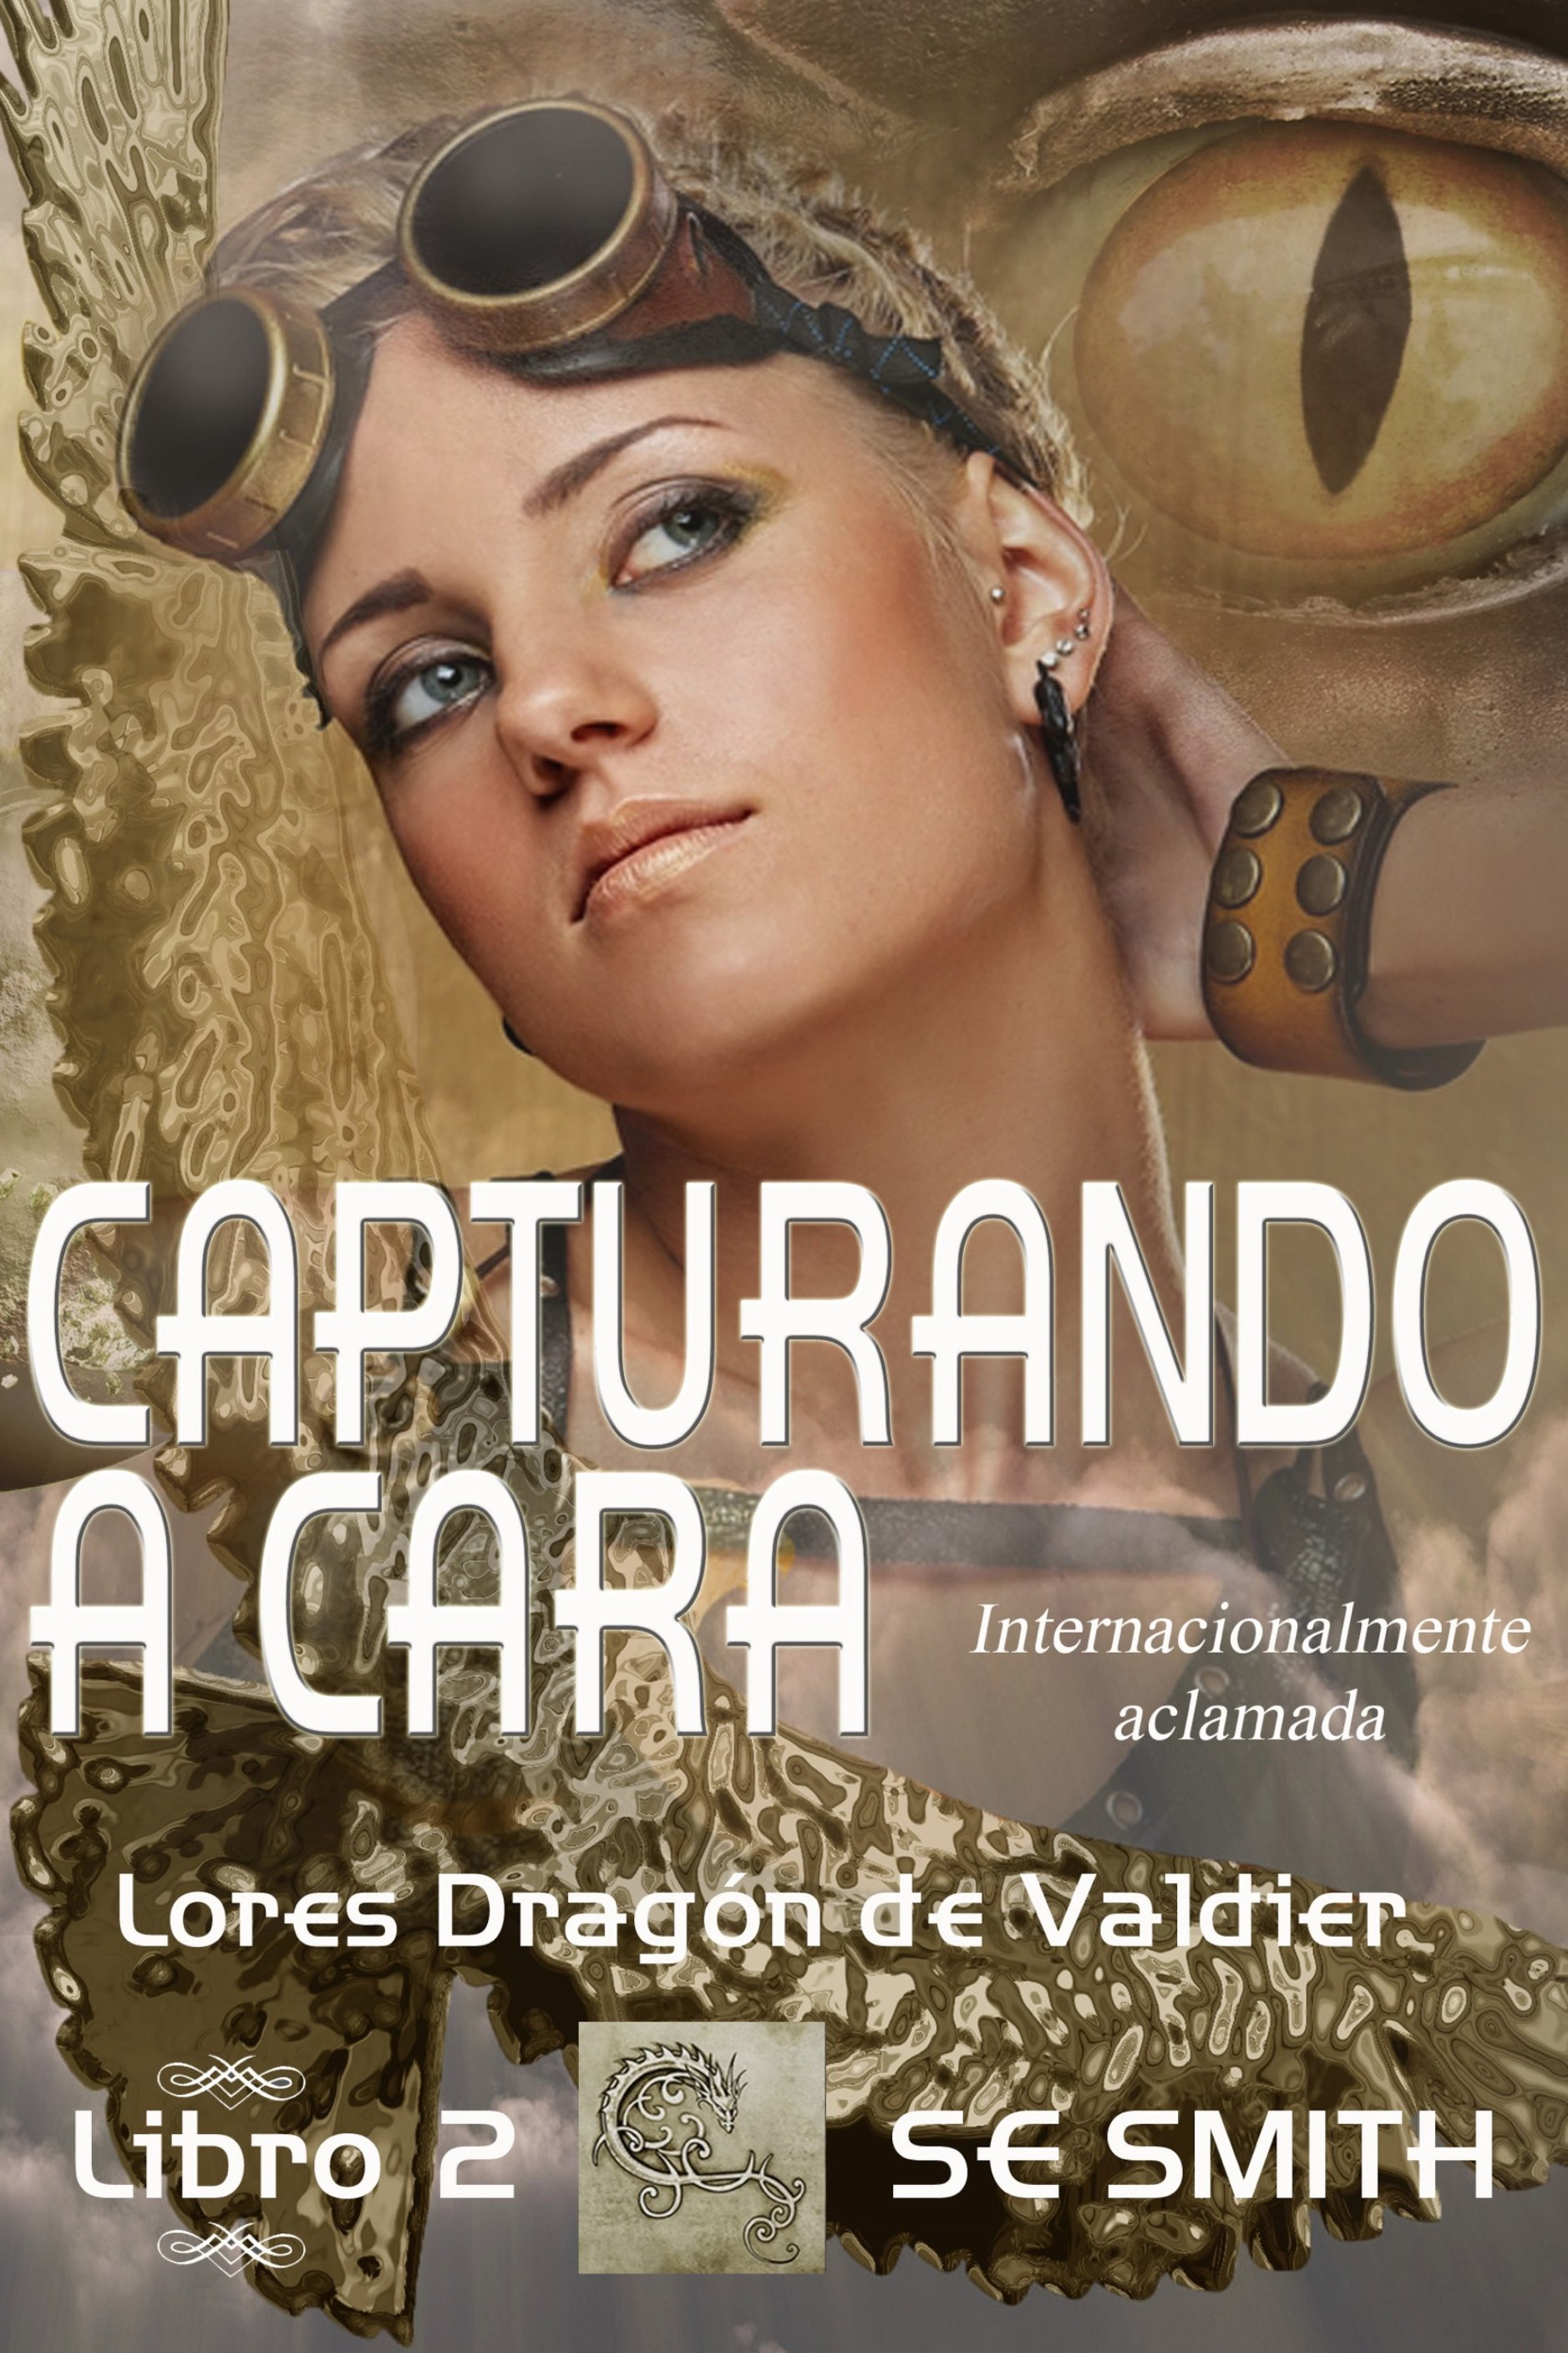 CAPTURANDO A CARA: LORES DRAGÓN DE VALDIER, LIBRO 2 (ebook: Kindle y epub)